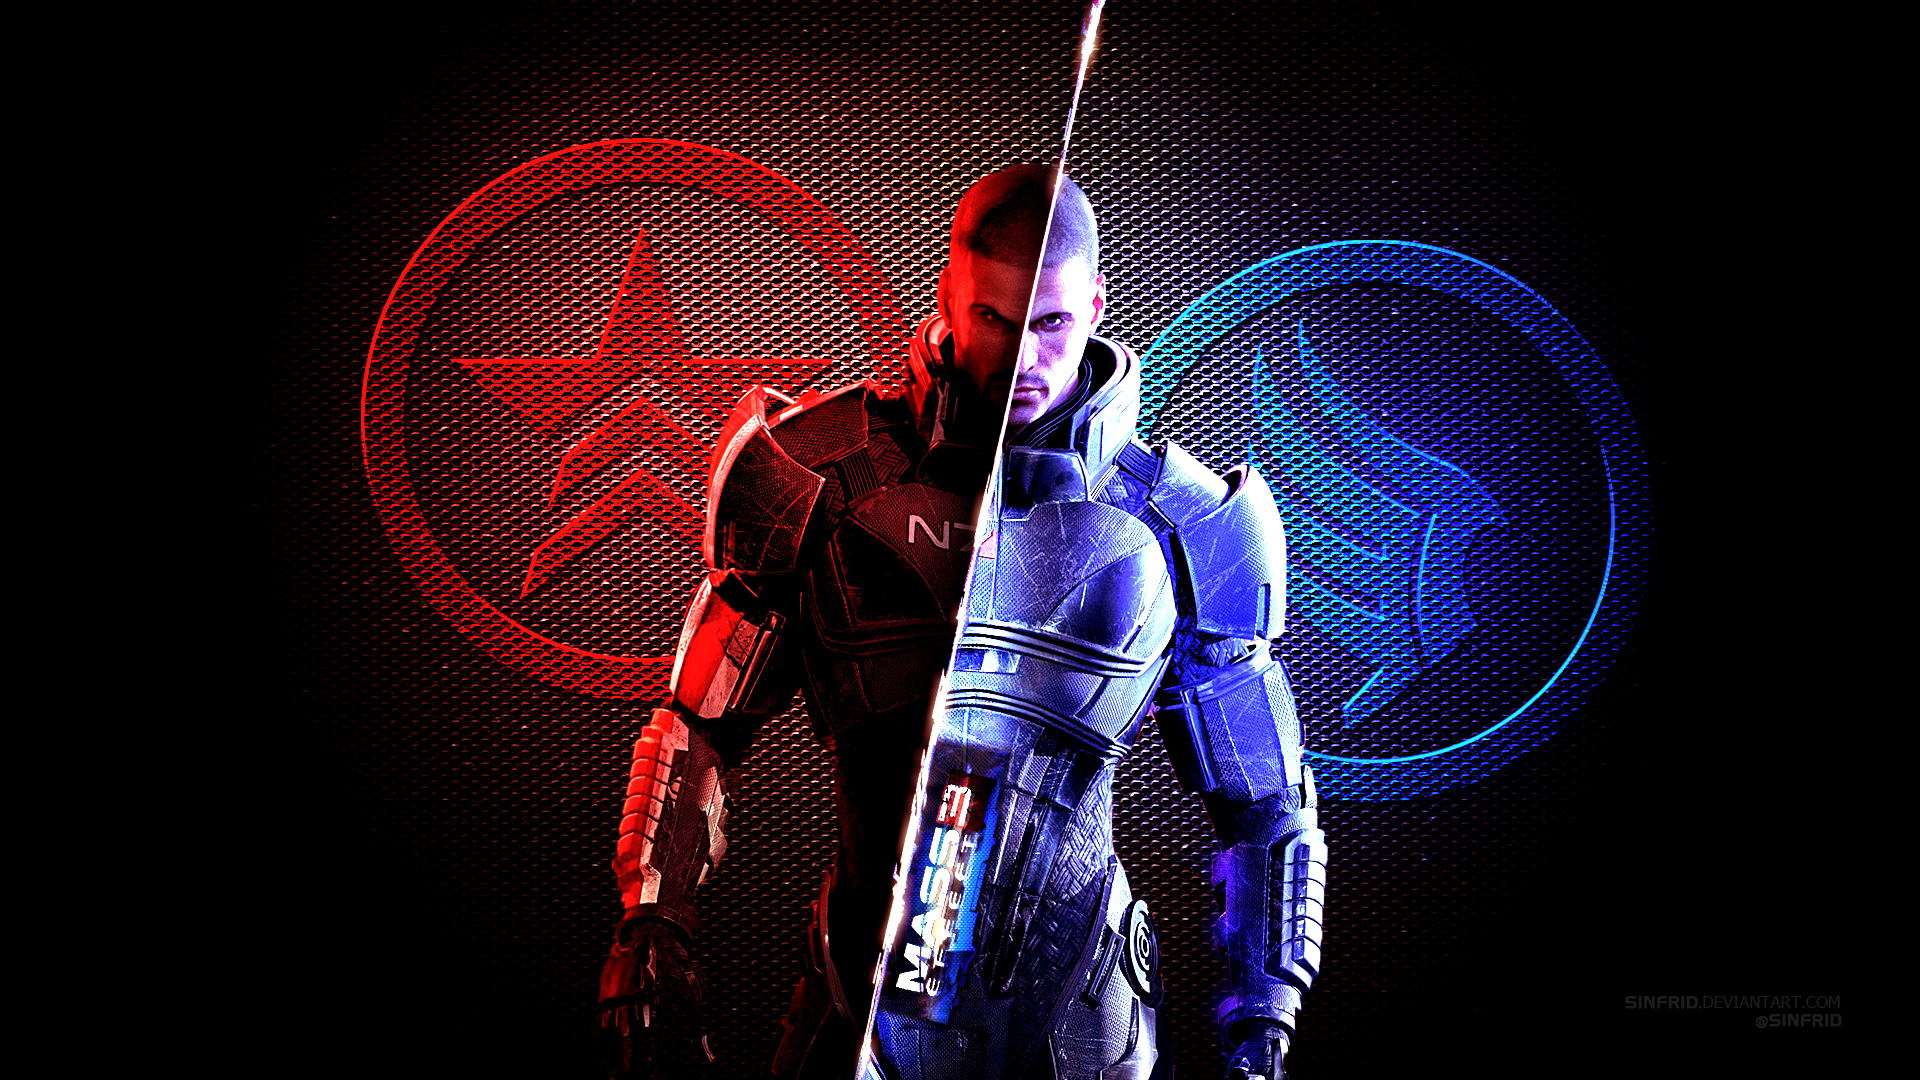 Mass Effect 3 Wallpaper 01 by Sinfrid